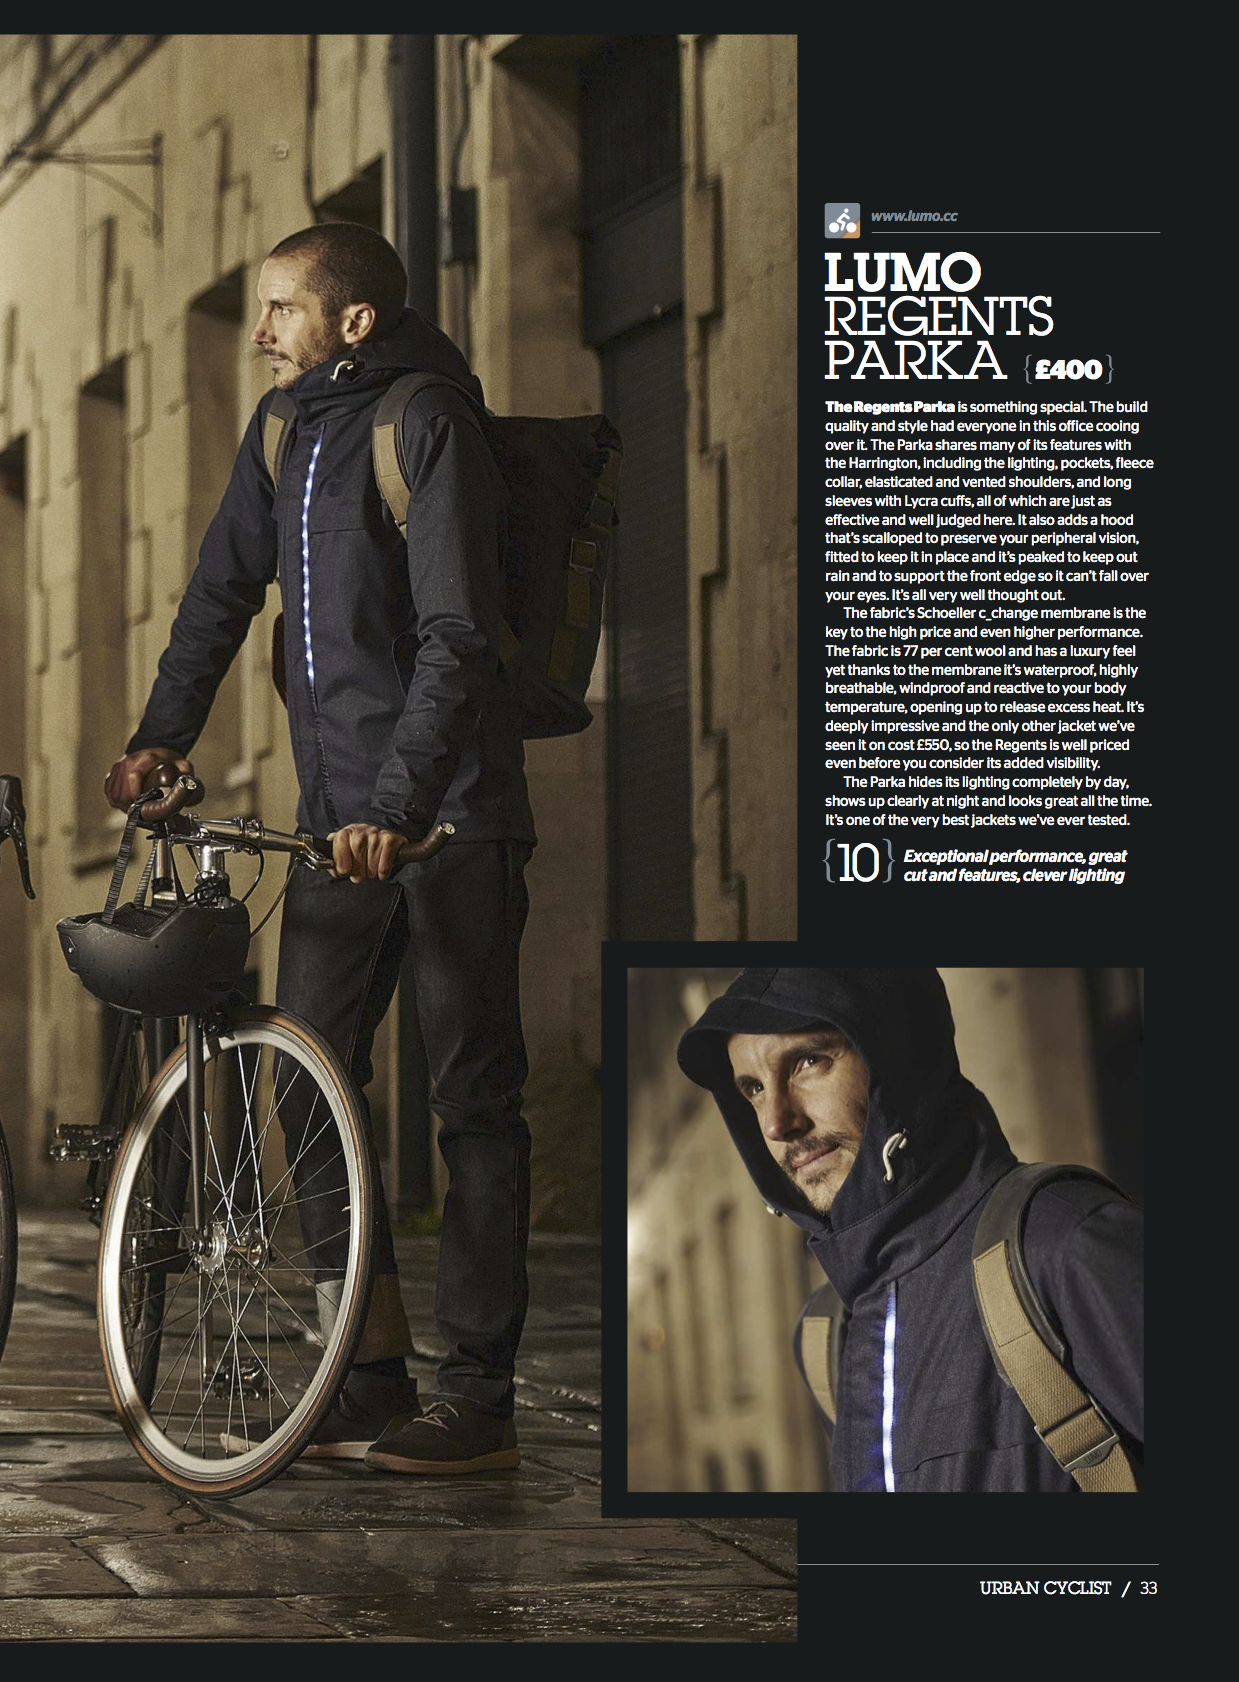 Urban Cyclist Lumo Regents Parka Jacket Review Lumo Parka